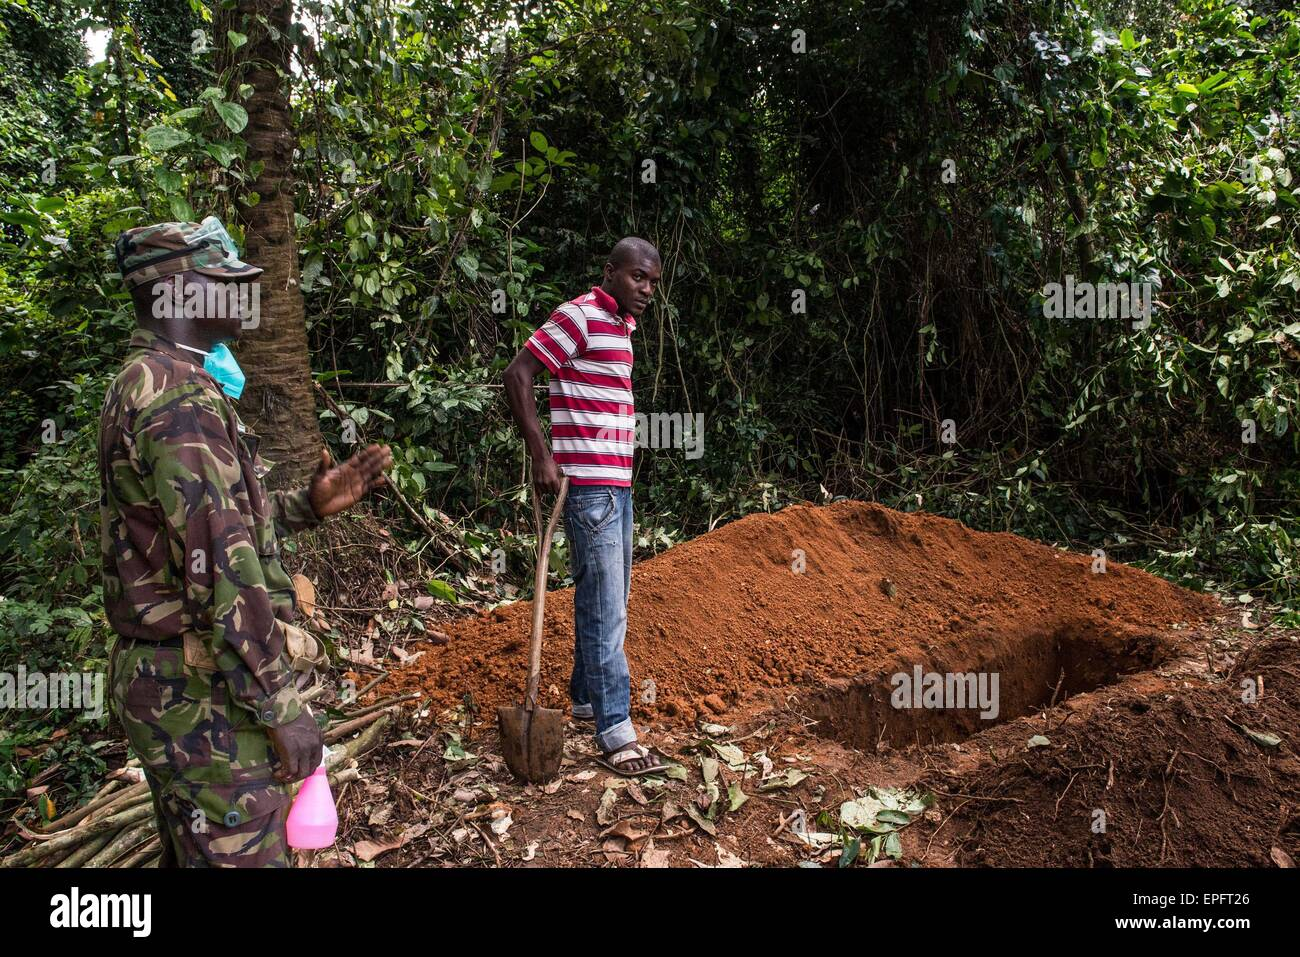 A soldier looks on as a man stands by a grave where a suspected Ebola victim is about to be buried. Eastern Sierra - Stock Image